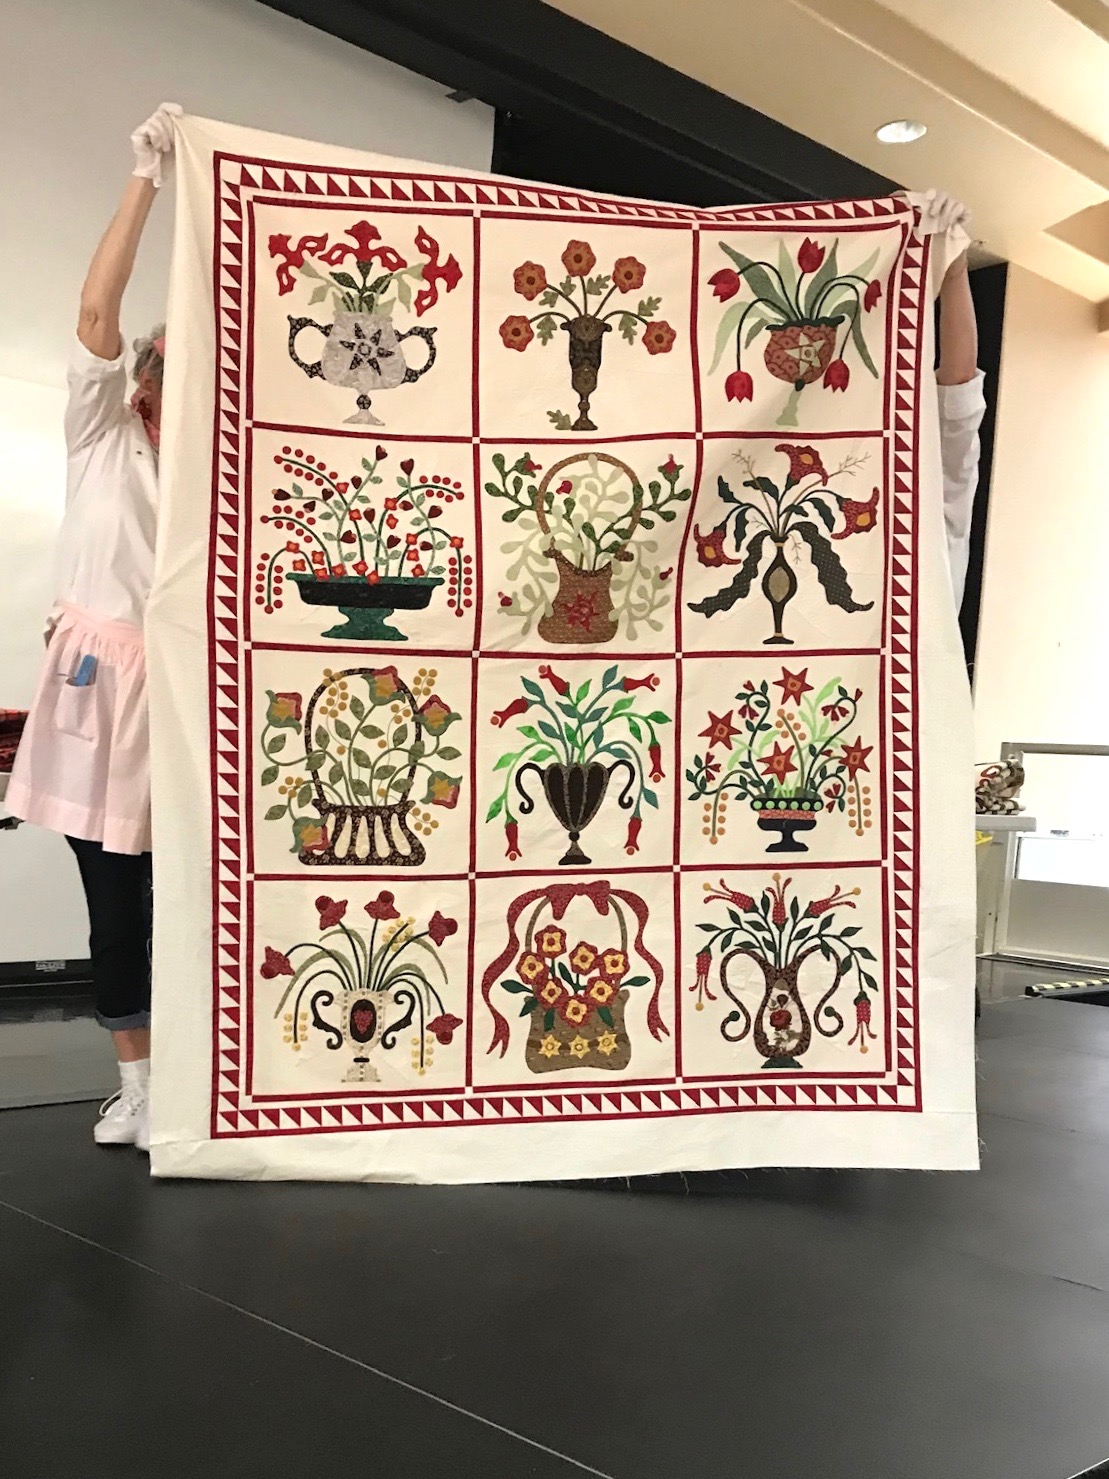 Introducing the 2021 Raffle Quilt